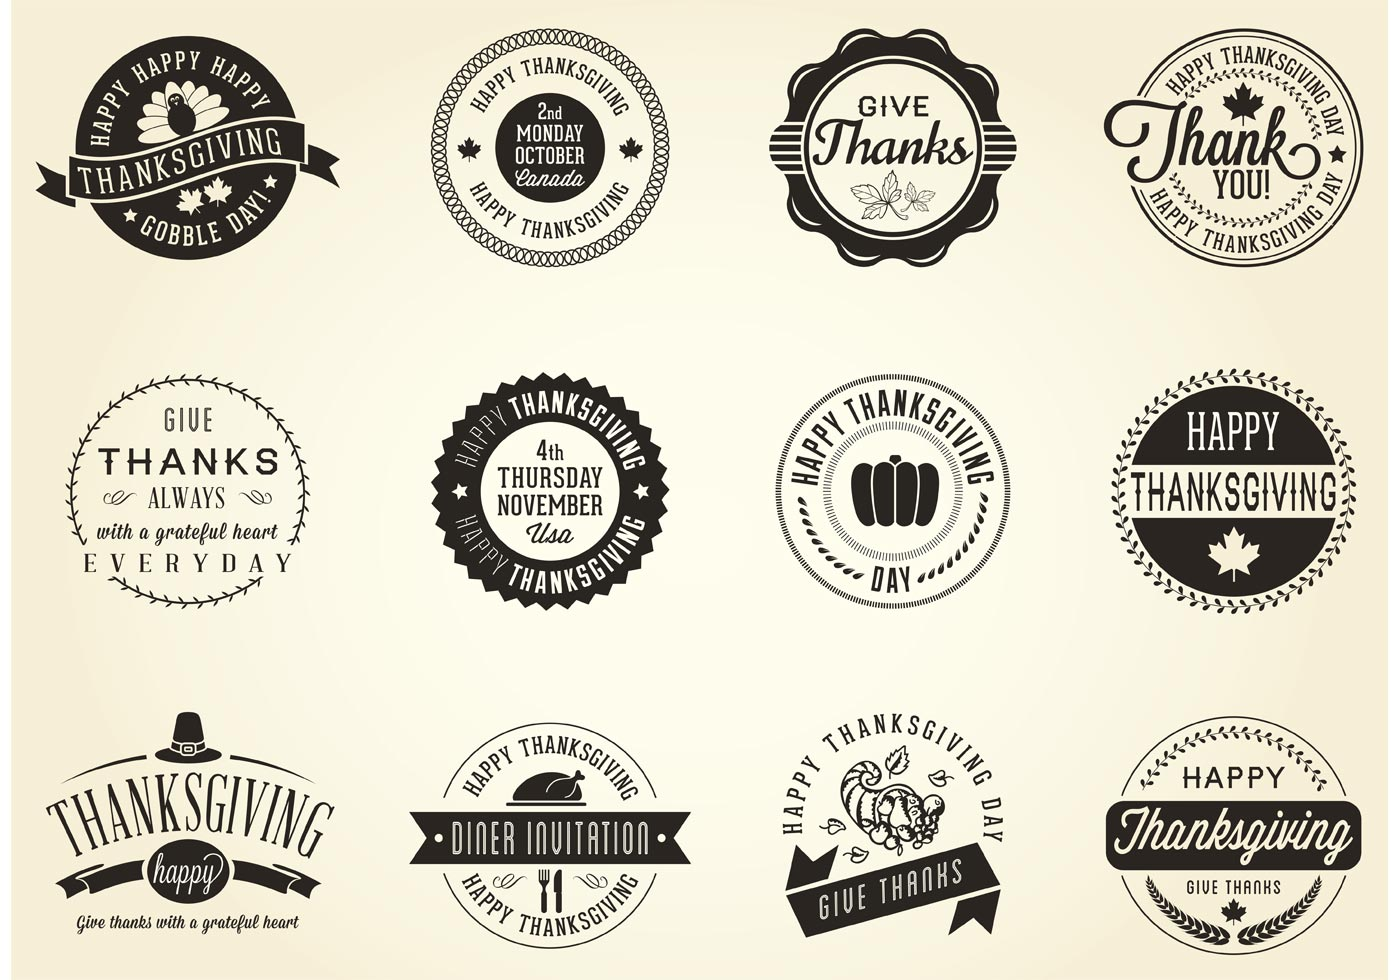 Download Free Vector Art Stock: Vector Thanksgiving Badges